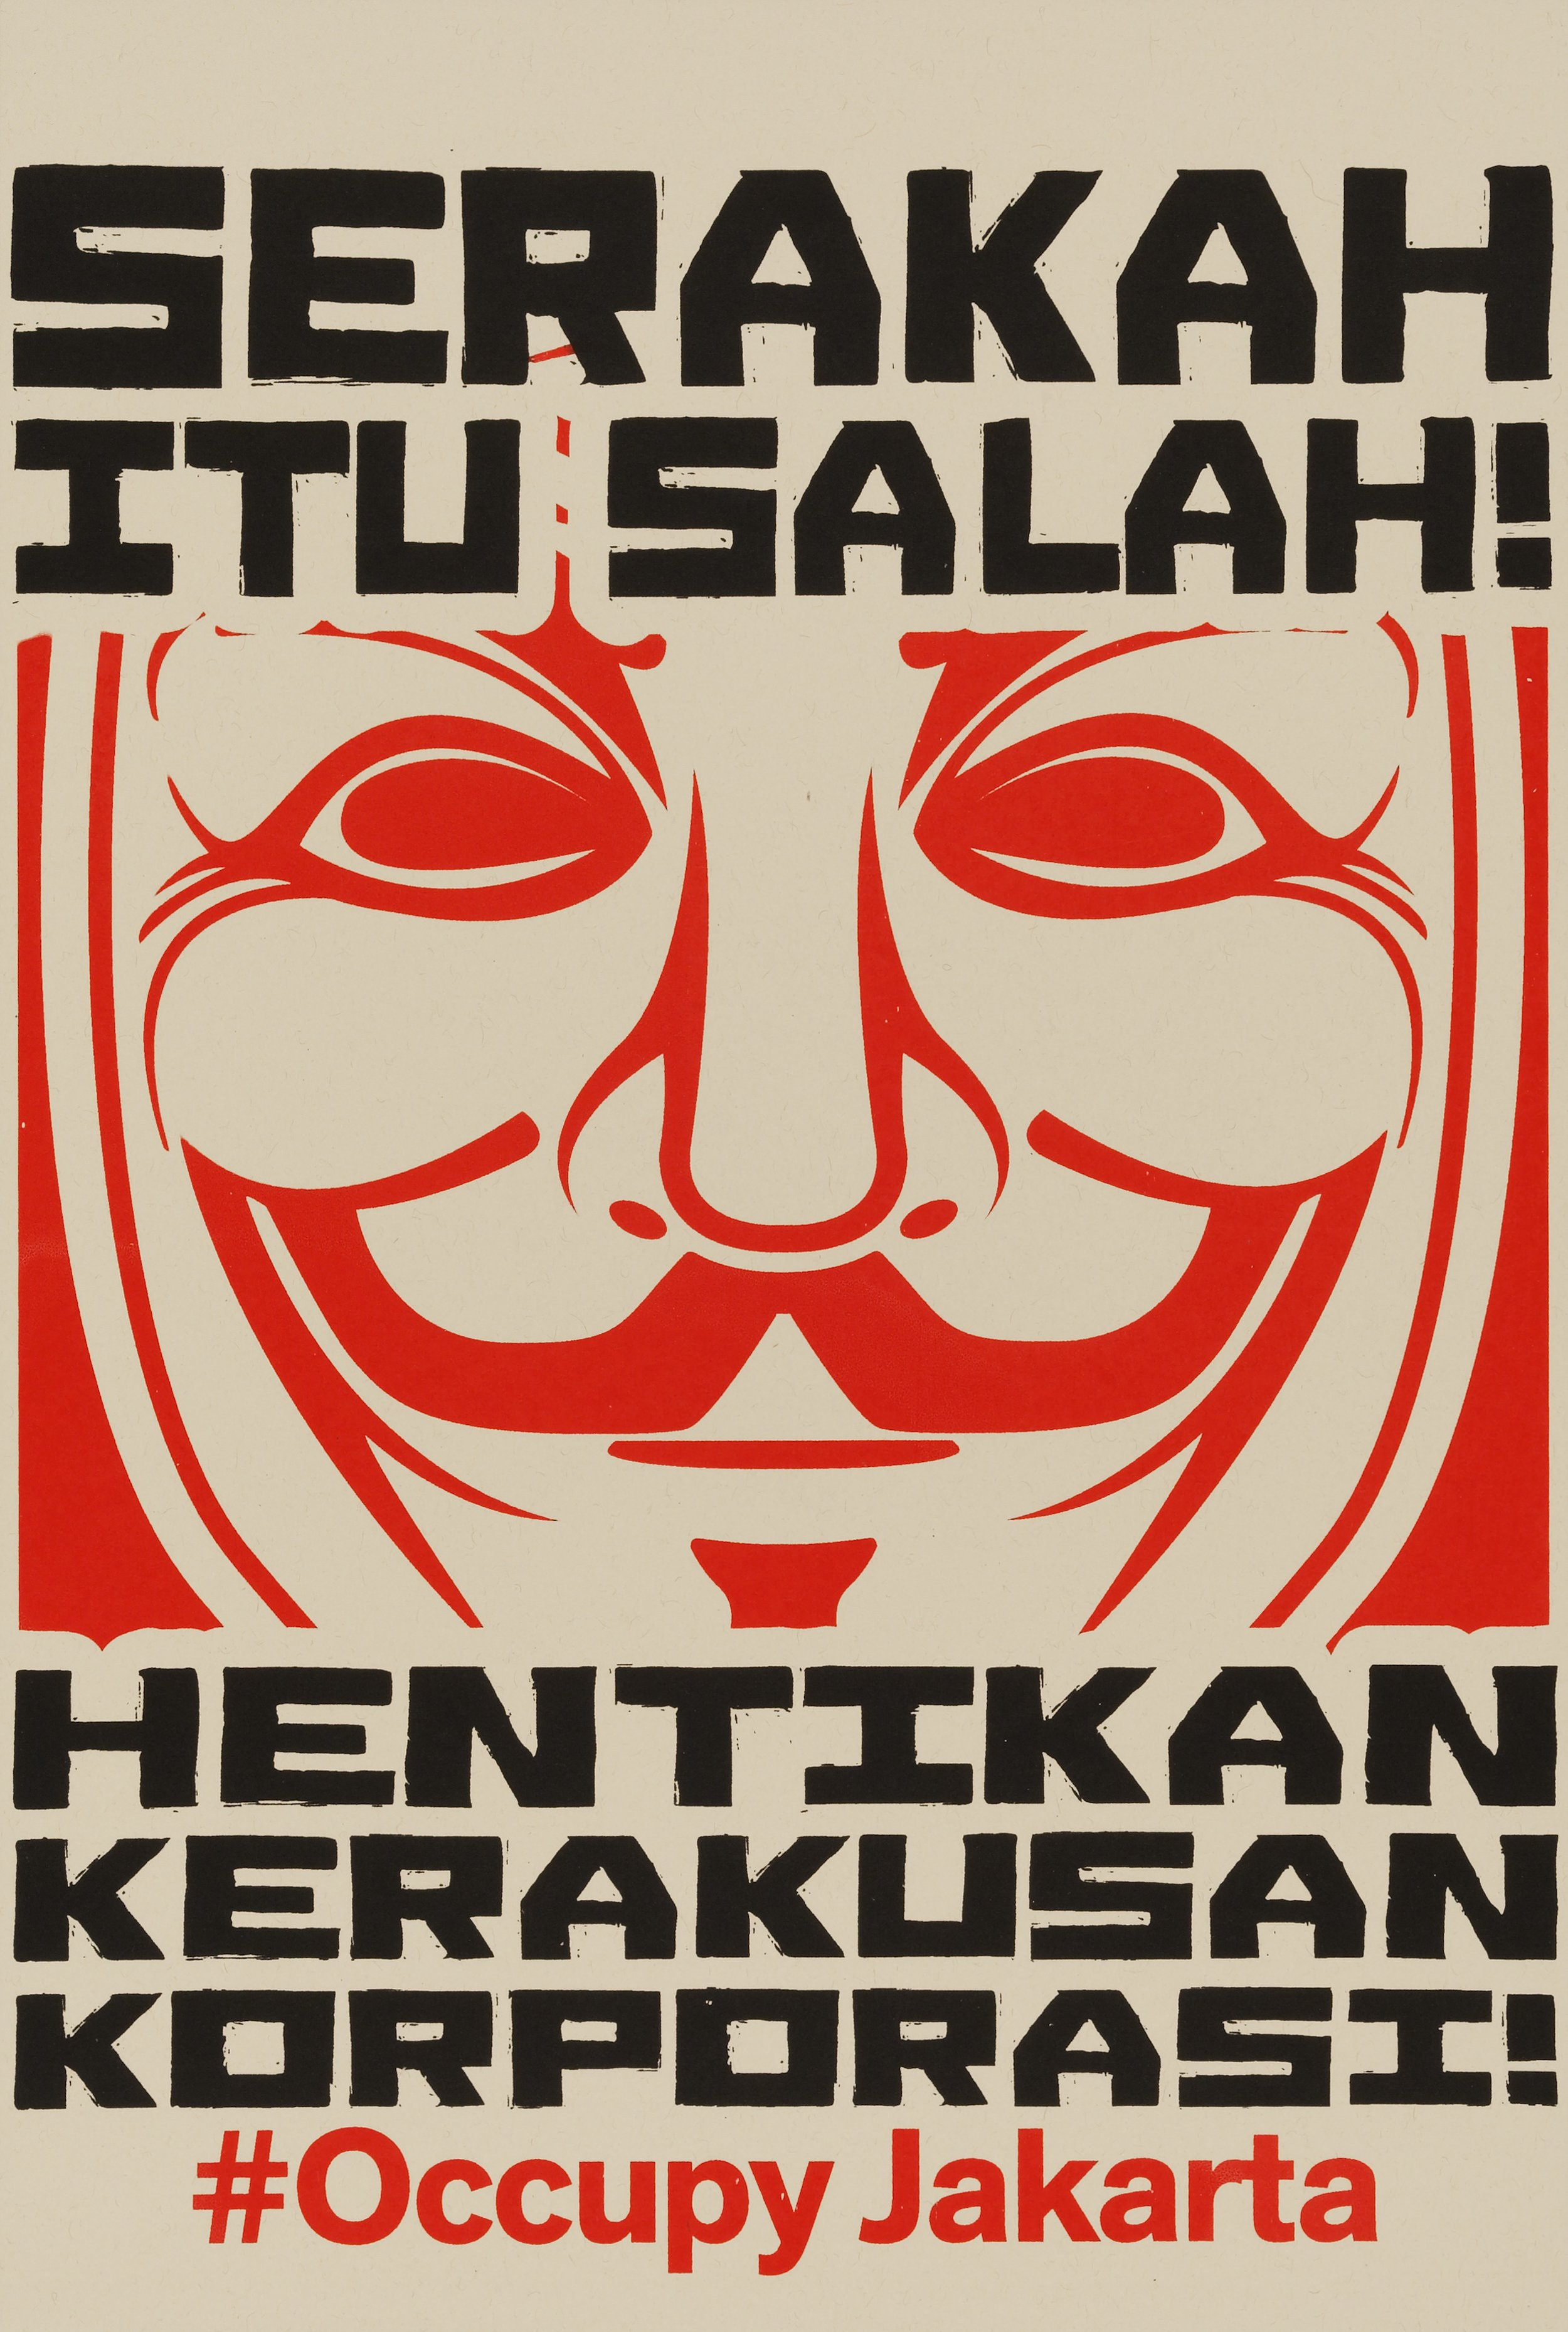 Nobodycorp. Internationale Unlimited, Indonesian, 21st century   #Occupy Jakarta: Serakah Itu Salah!, from the Occuprint Sponsor Portfolio   2012 Screenprint on French paper 18/100 Sheet: 18 1/16 x 12 1/16 in. (45.9 x 30.6 cm)   Hood Museum of Art, Dartmouth College: Purchased through the Contemporary Art Fund ; 2012.38.10  ©  Nobodycorp